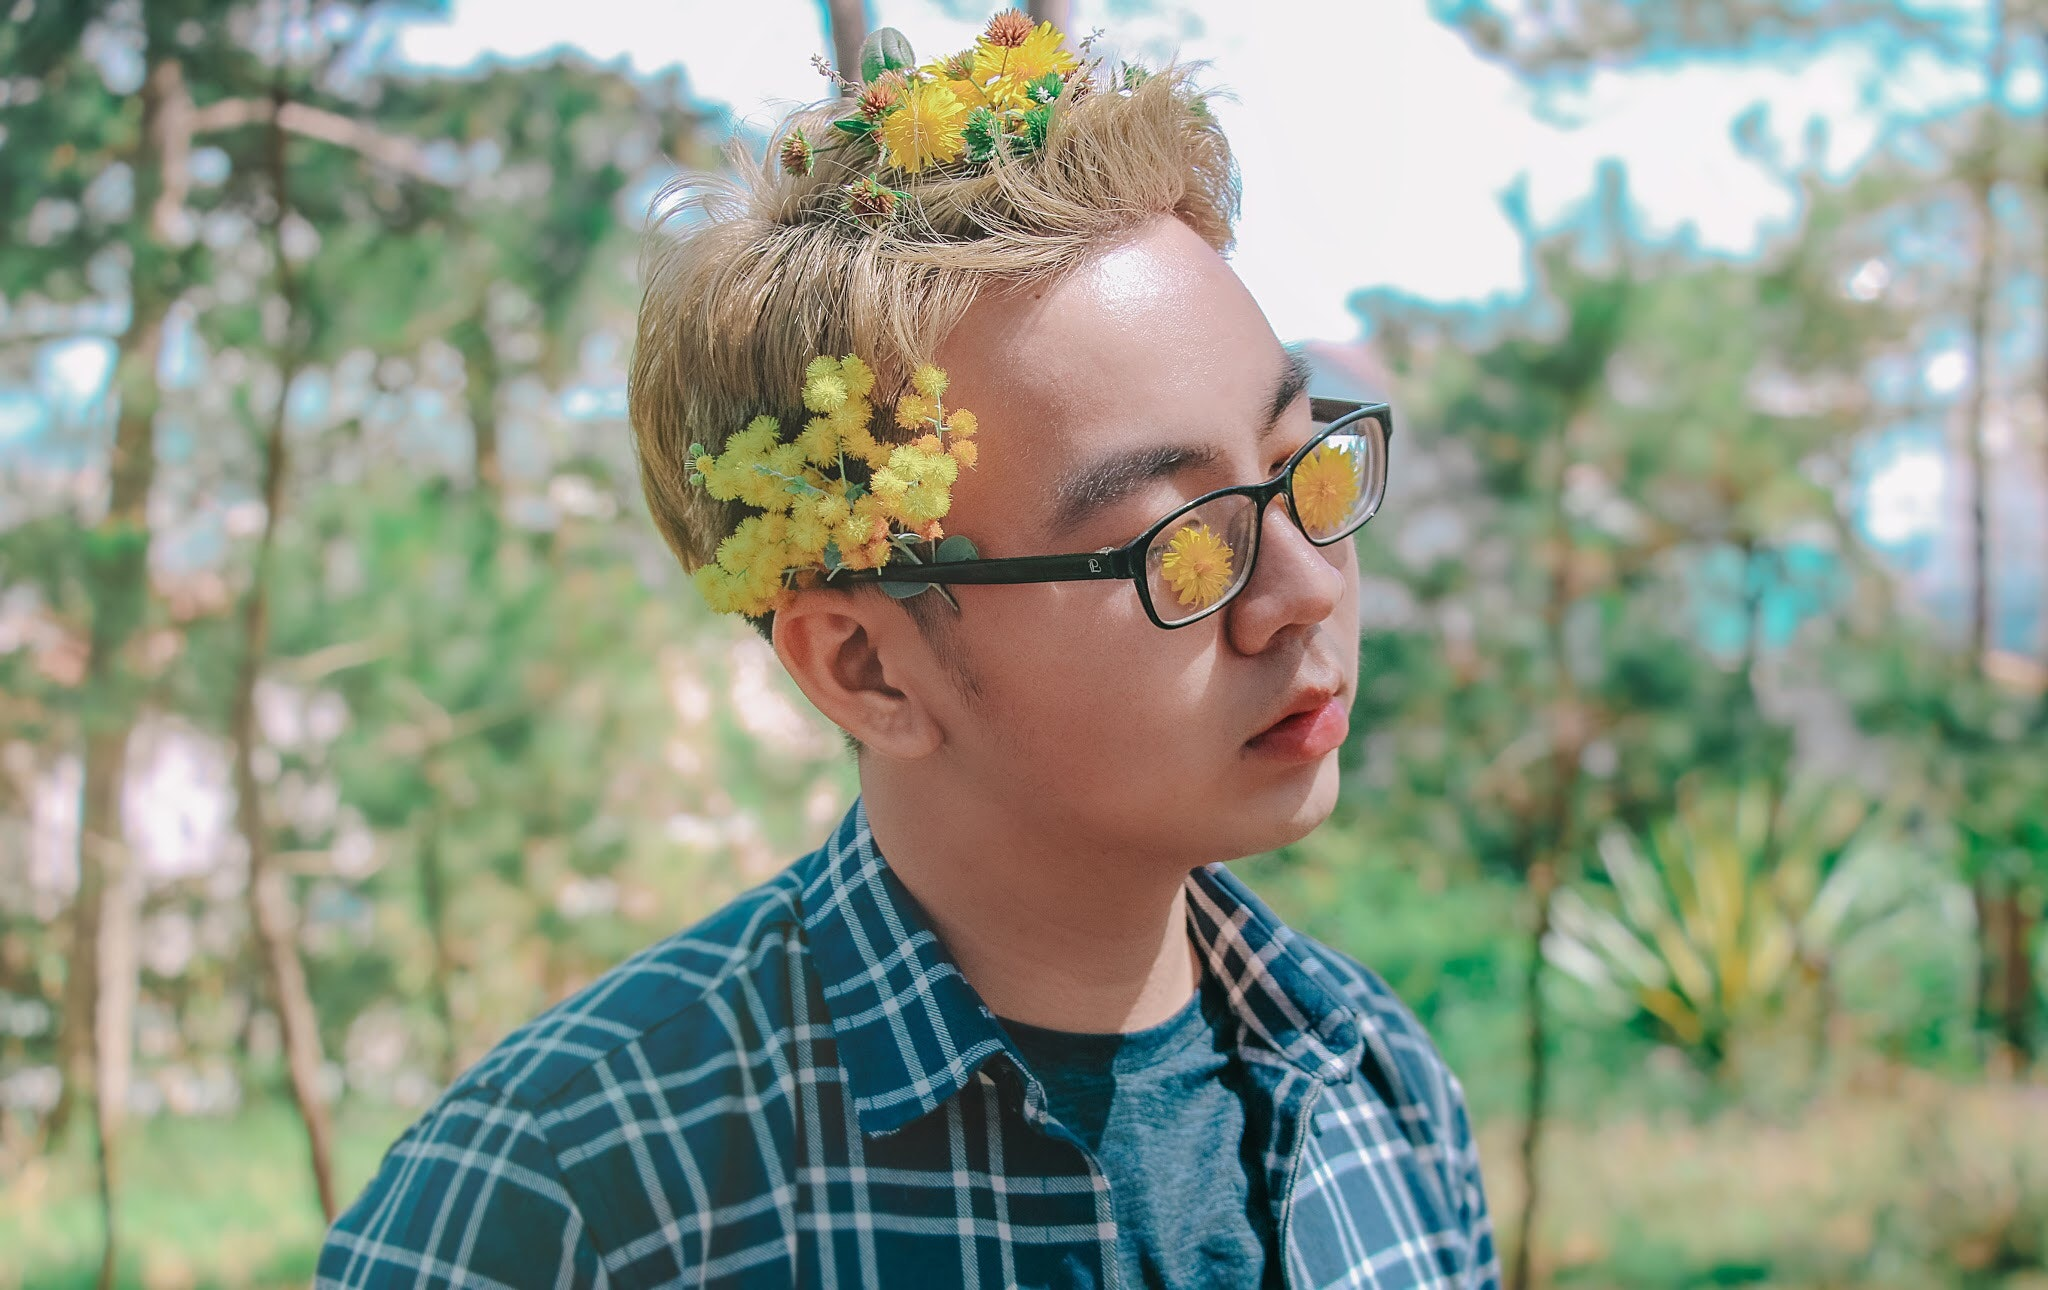 Photo of a Man with Flowers on His Hair, Model, Young, Woods, Trees, HQ Photo